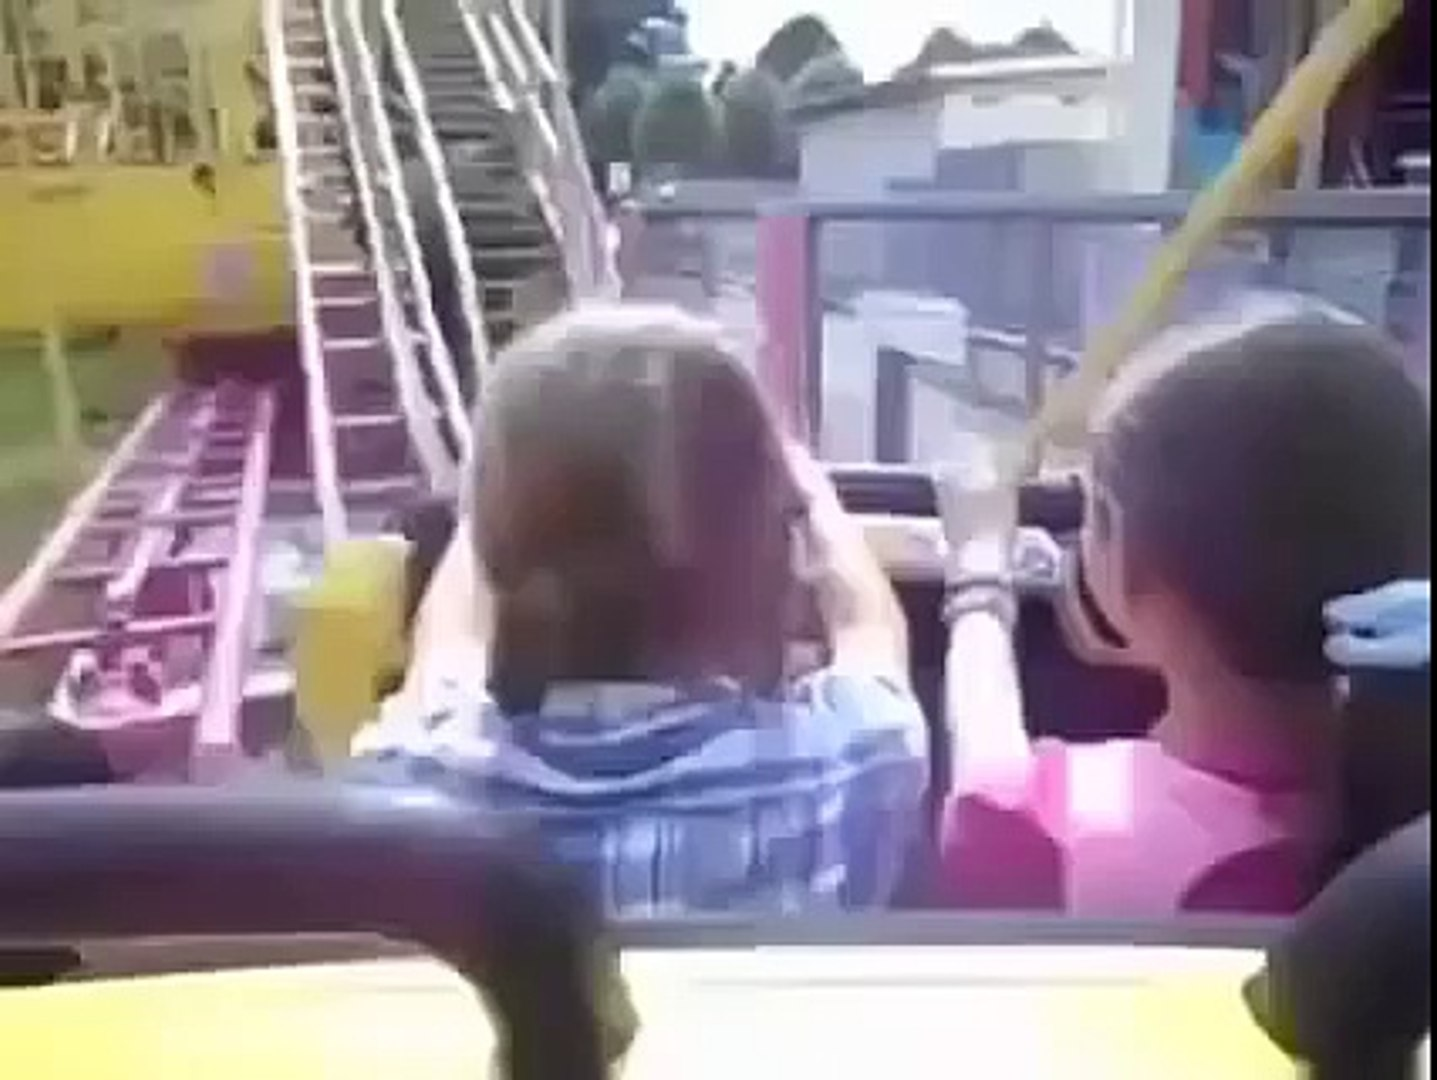 Funny Video - Bosnian guy with kids on roller coaster